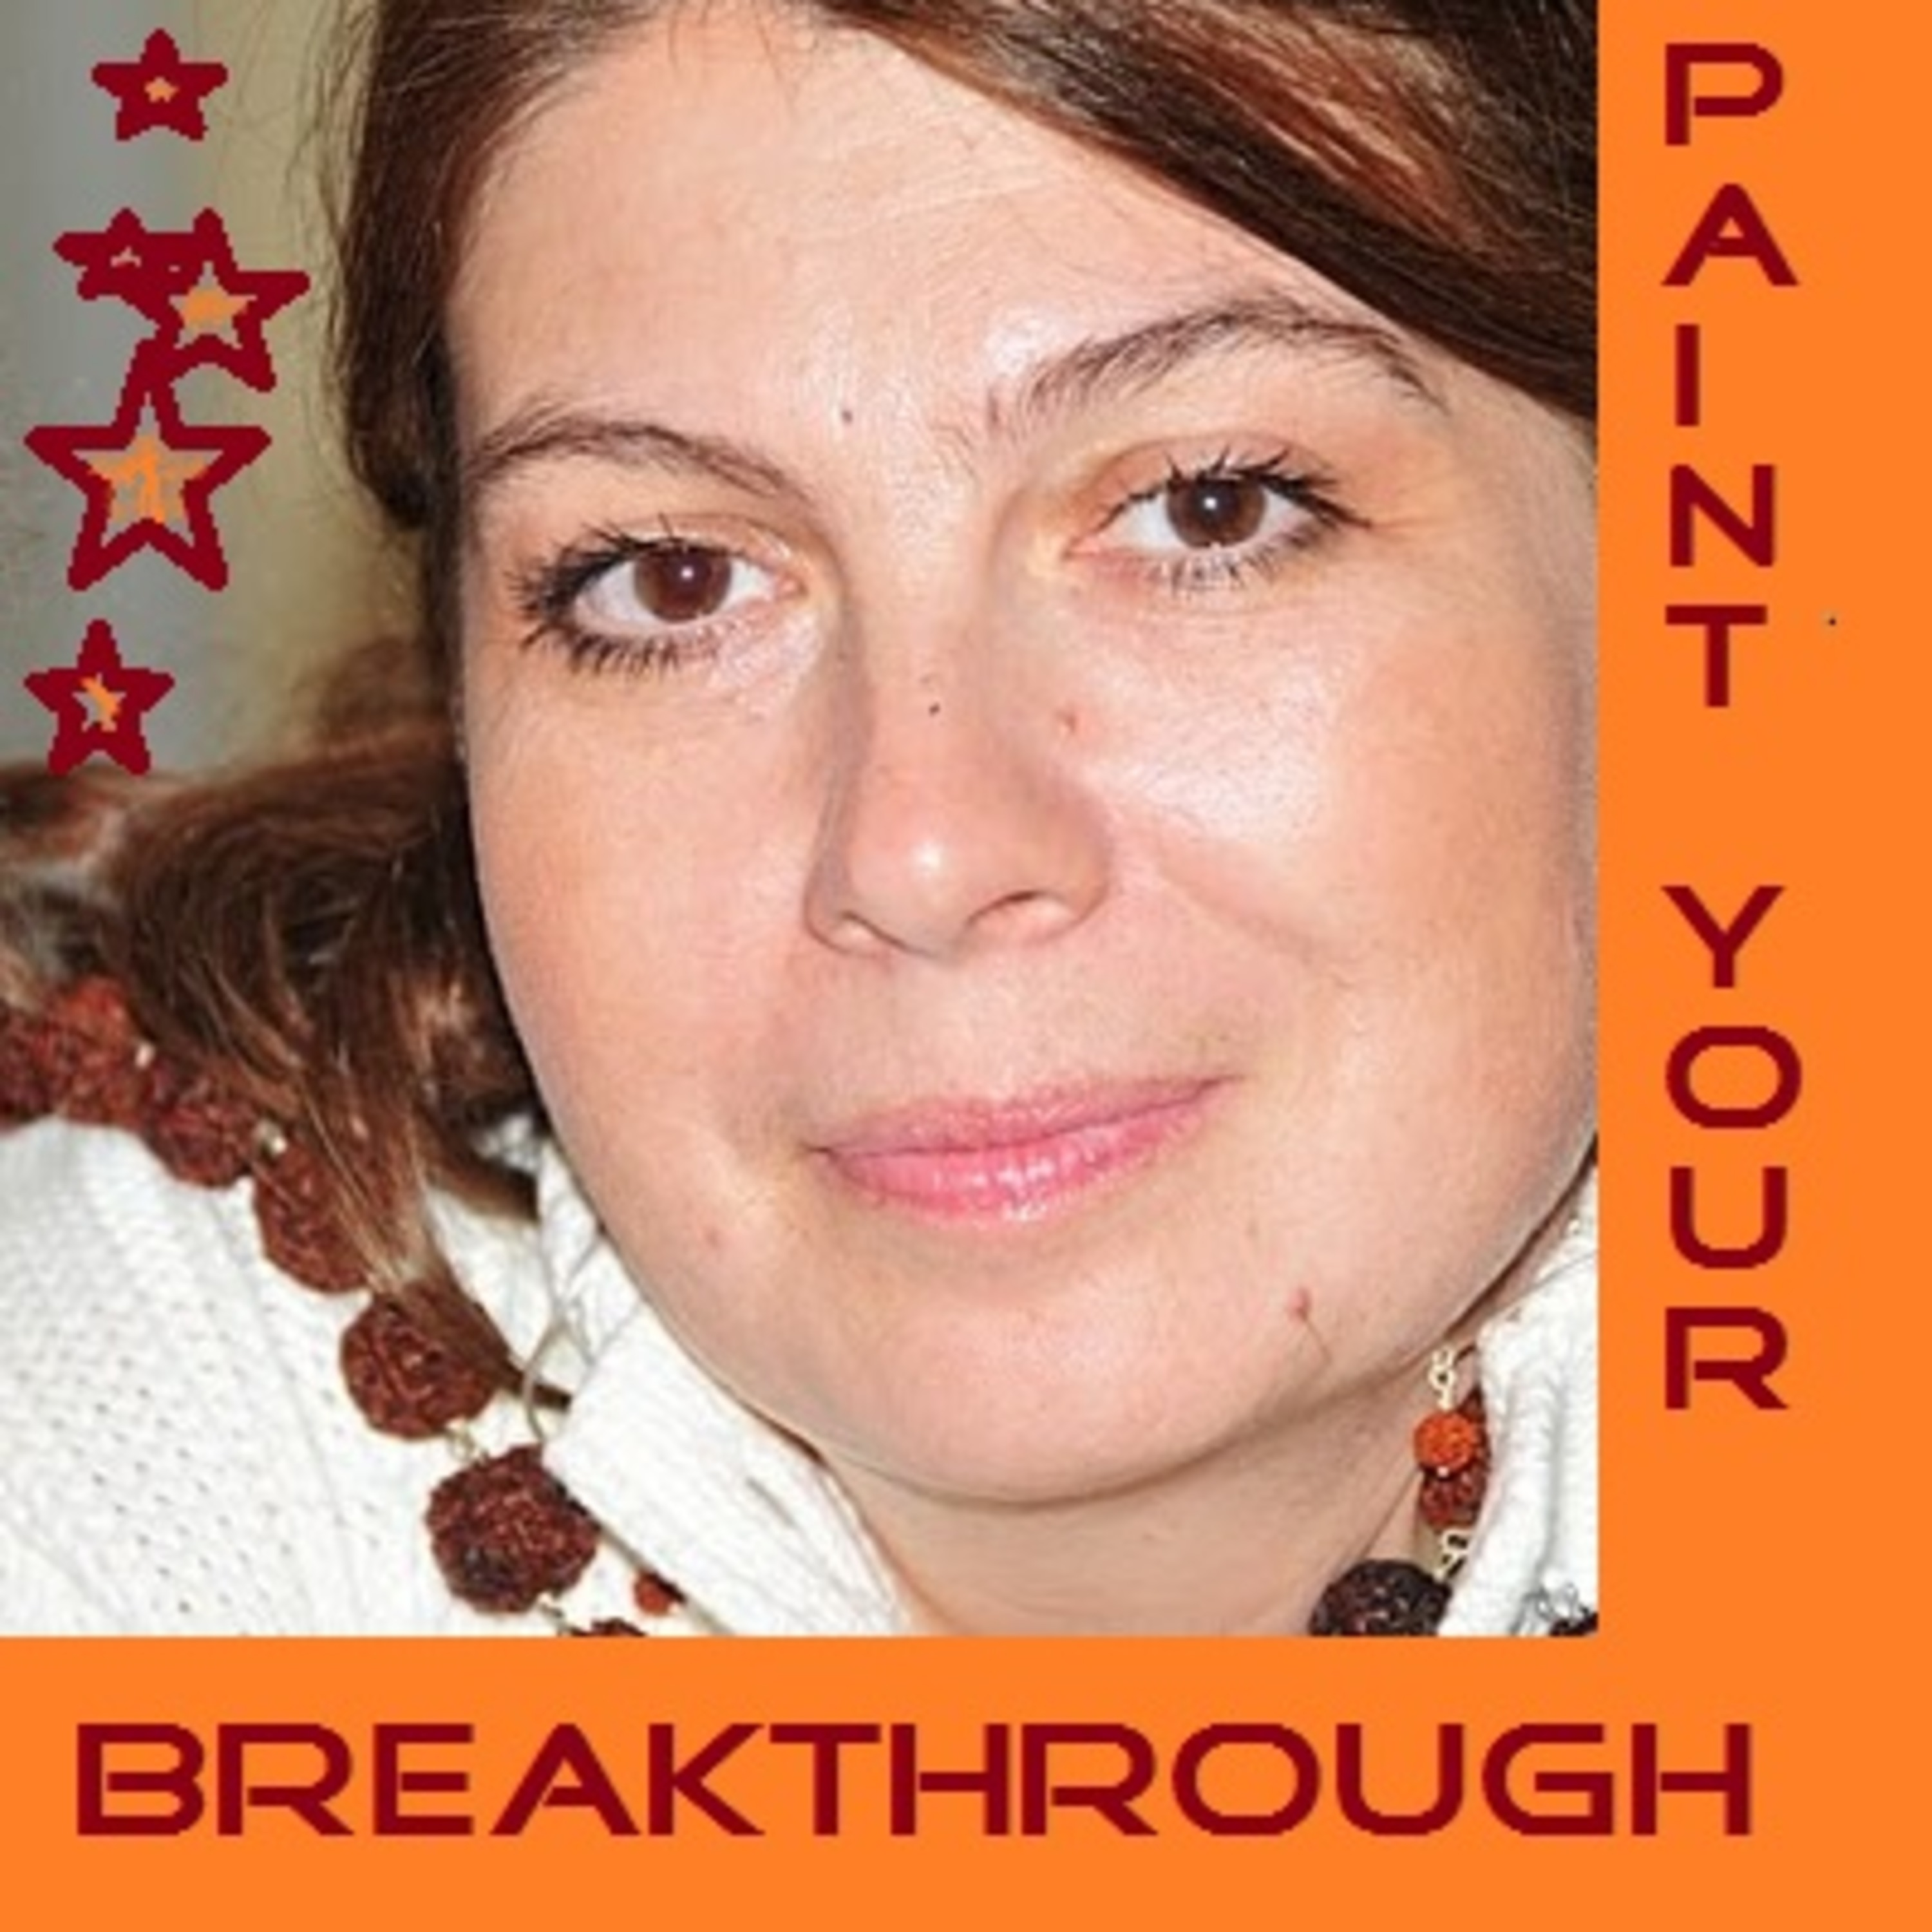 Paint your Breakthrough - Welcome!